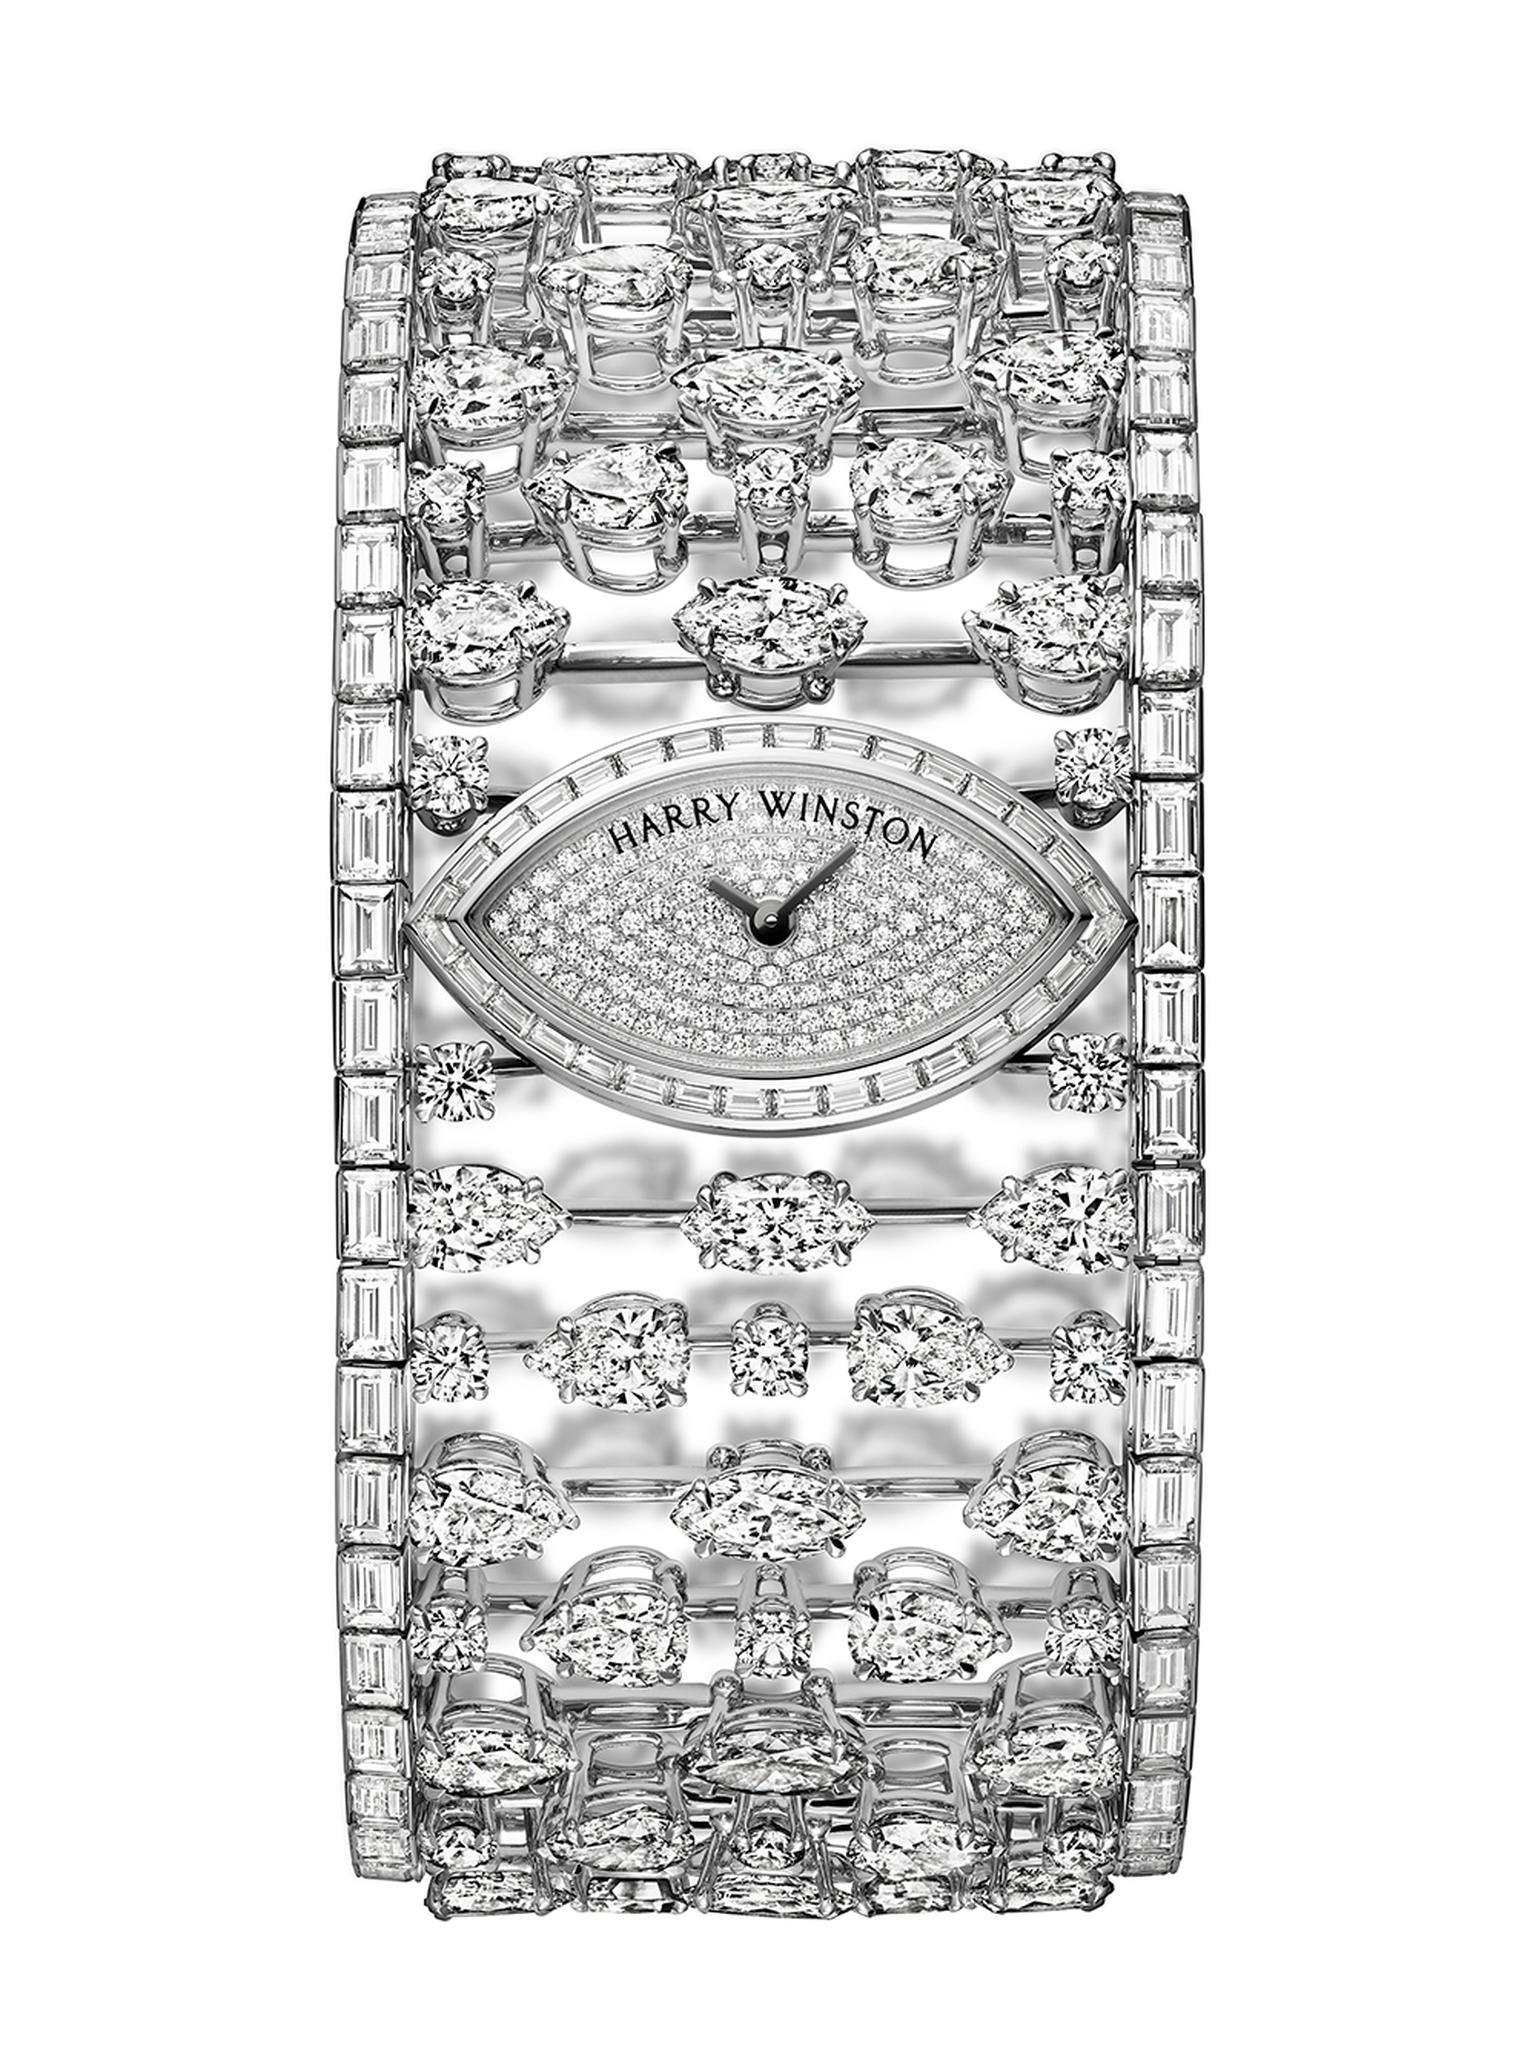 The one-of-a-kind Harry Winston Mrs Winston High Jewelery Timepiece is set with 230 diamonds (£POA).